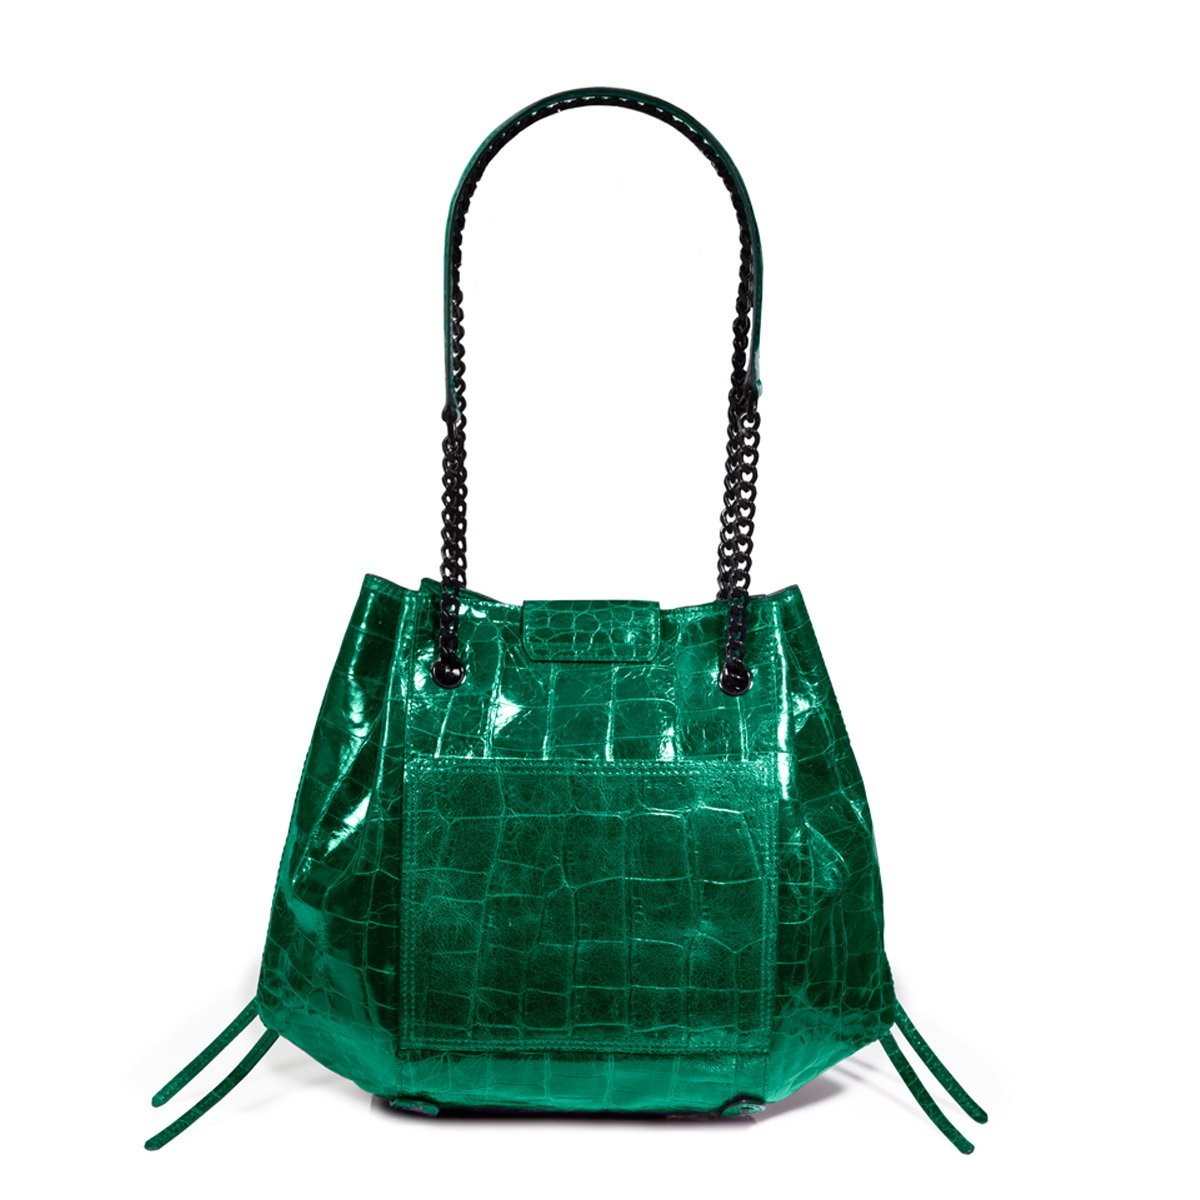 Eric Javits Luxury Fashion Designer Women's Handbag - Lil' Leigh - Emerald - wiihuu